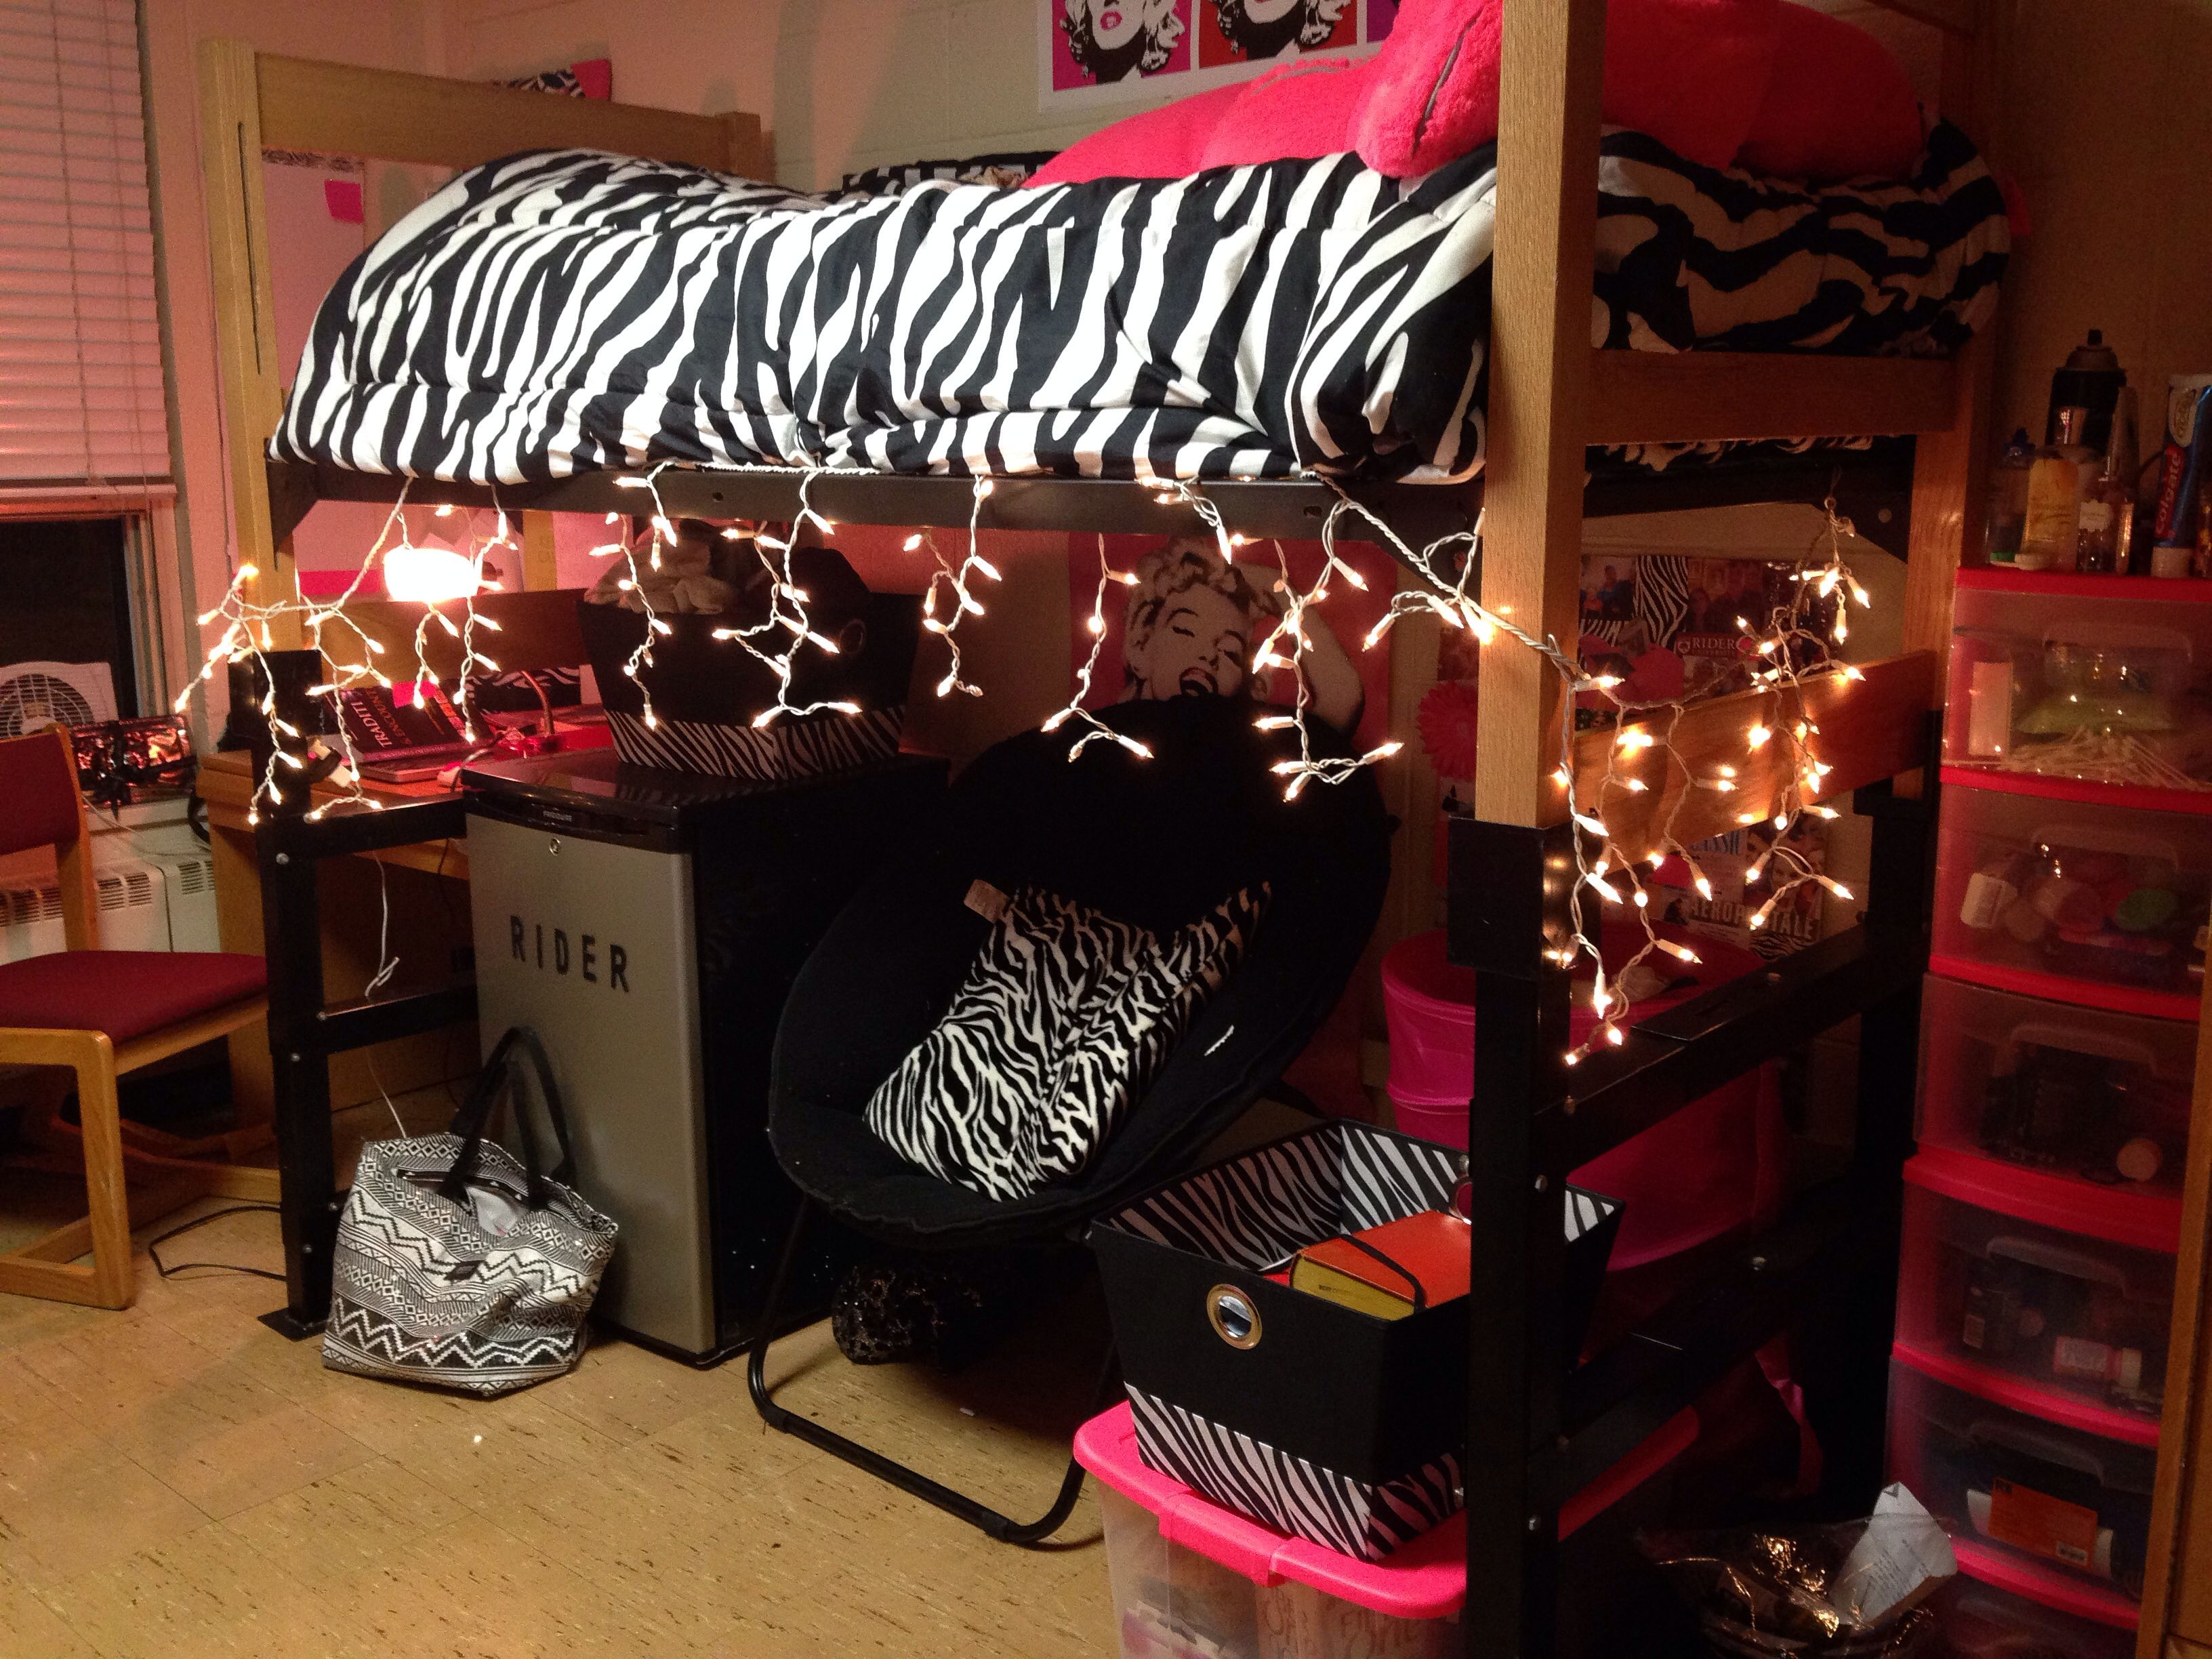 Adding Christmas lights to your room is a great way to lighten it up